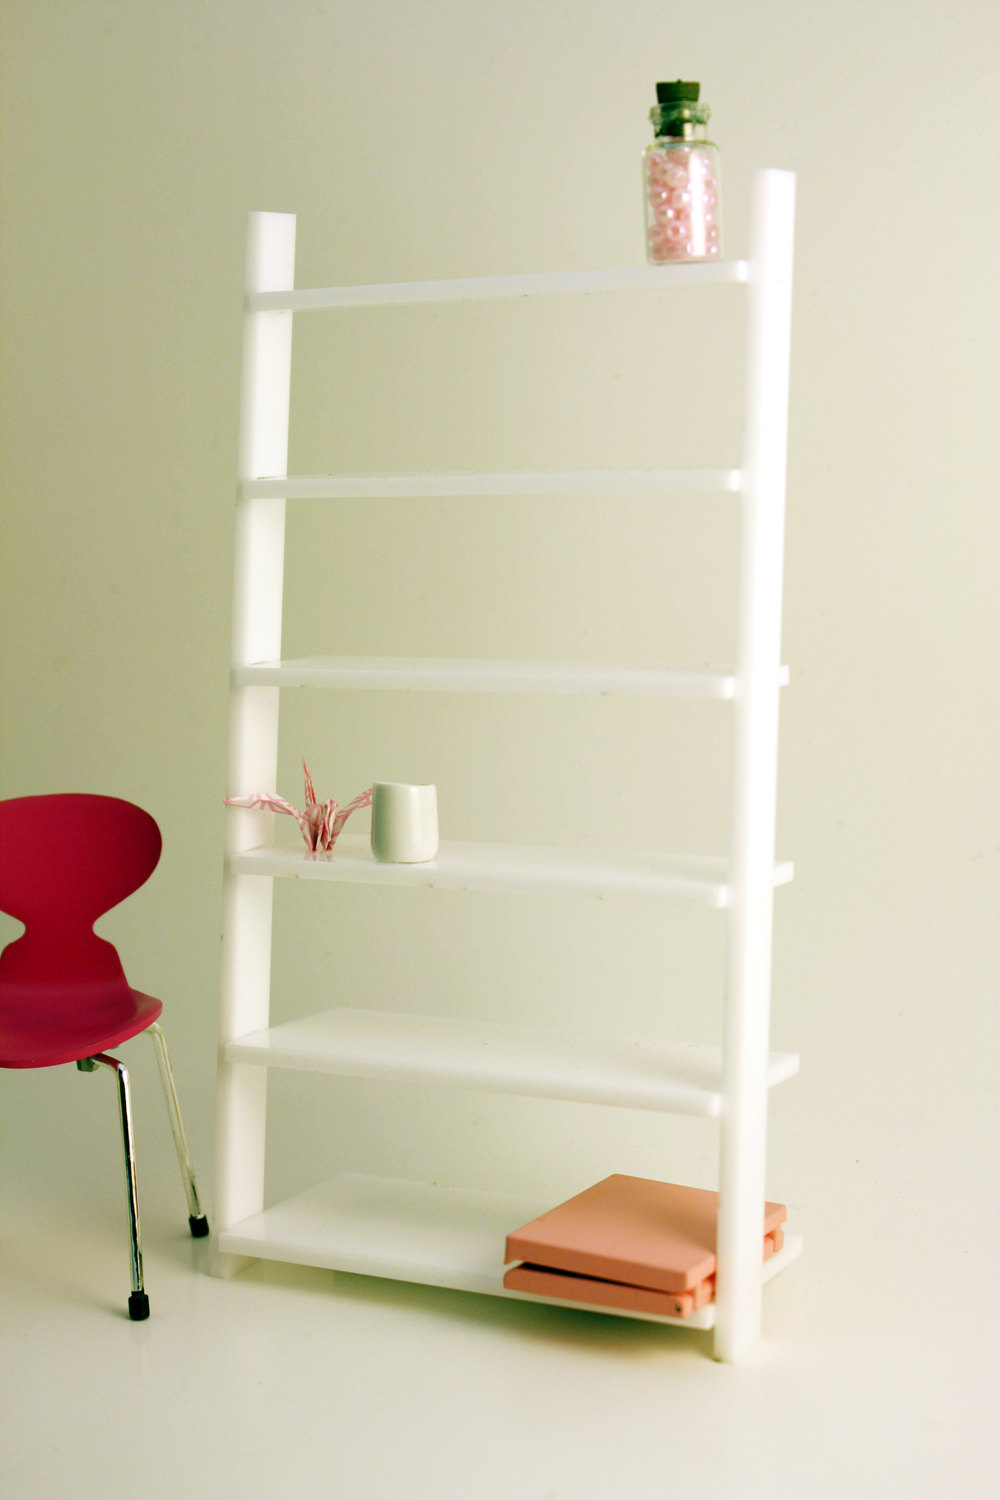 Miniature Modern Wall Leaning Bookcase White Acrylic In 1 12 One Inch Scale For Your Modern And Contemporary Dollhouse From Amazing Miniatures